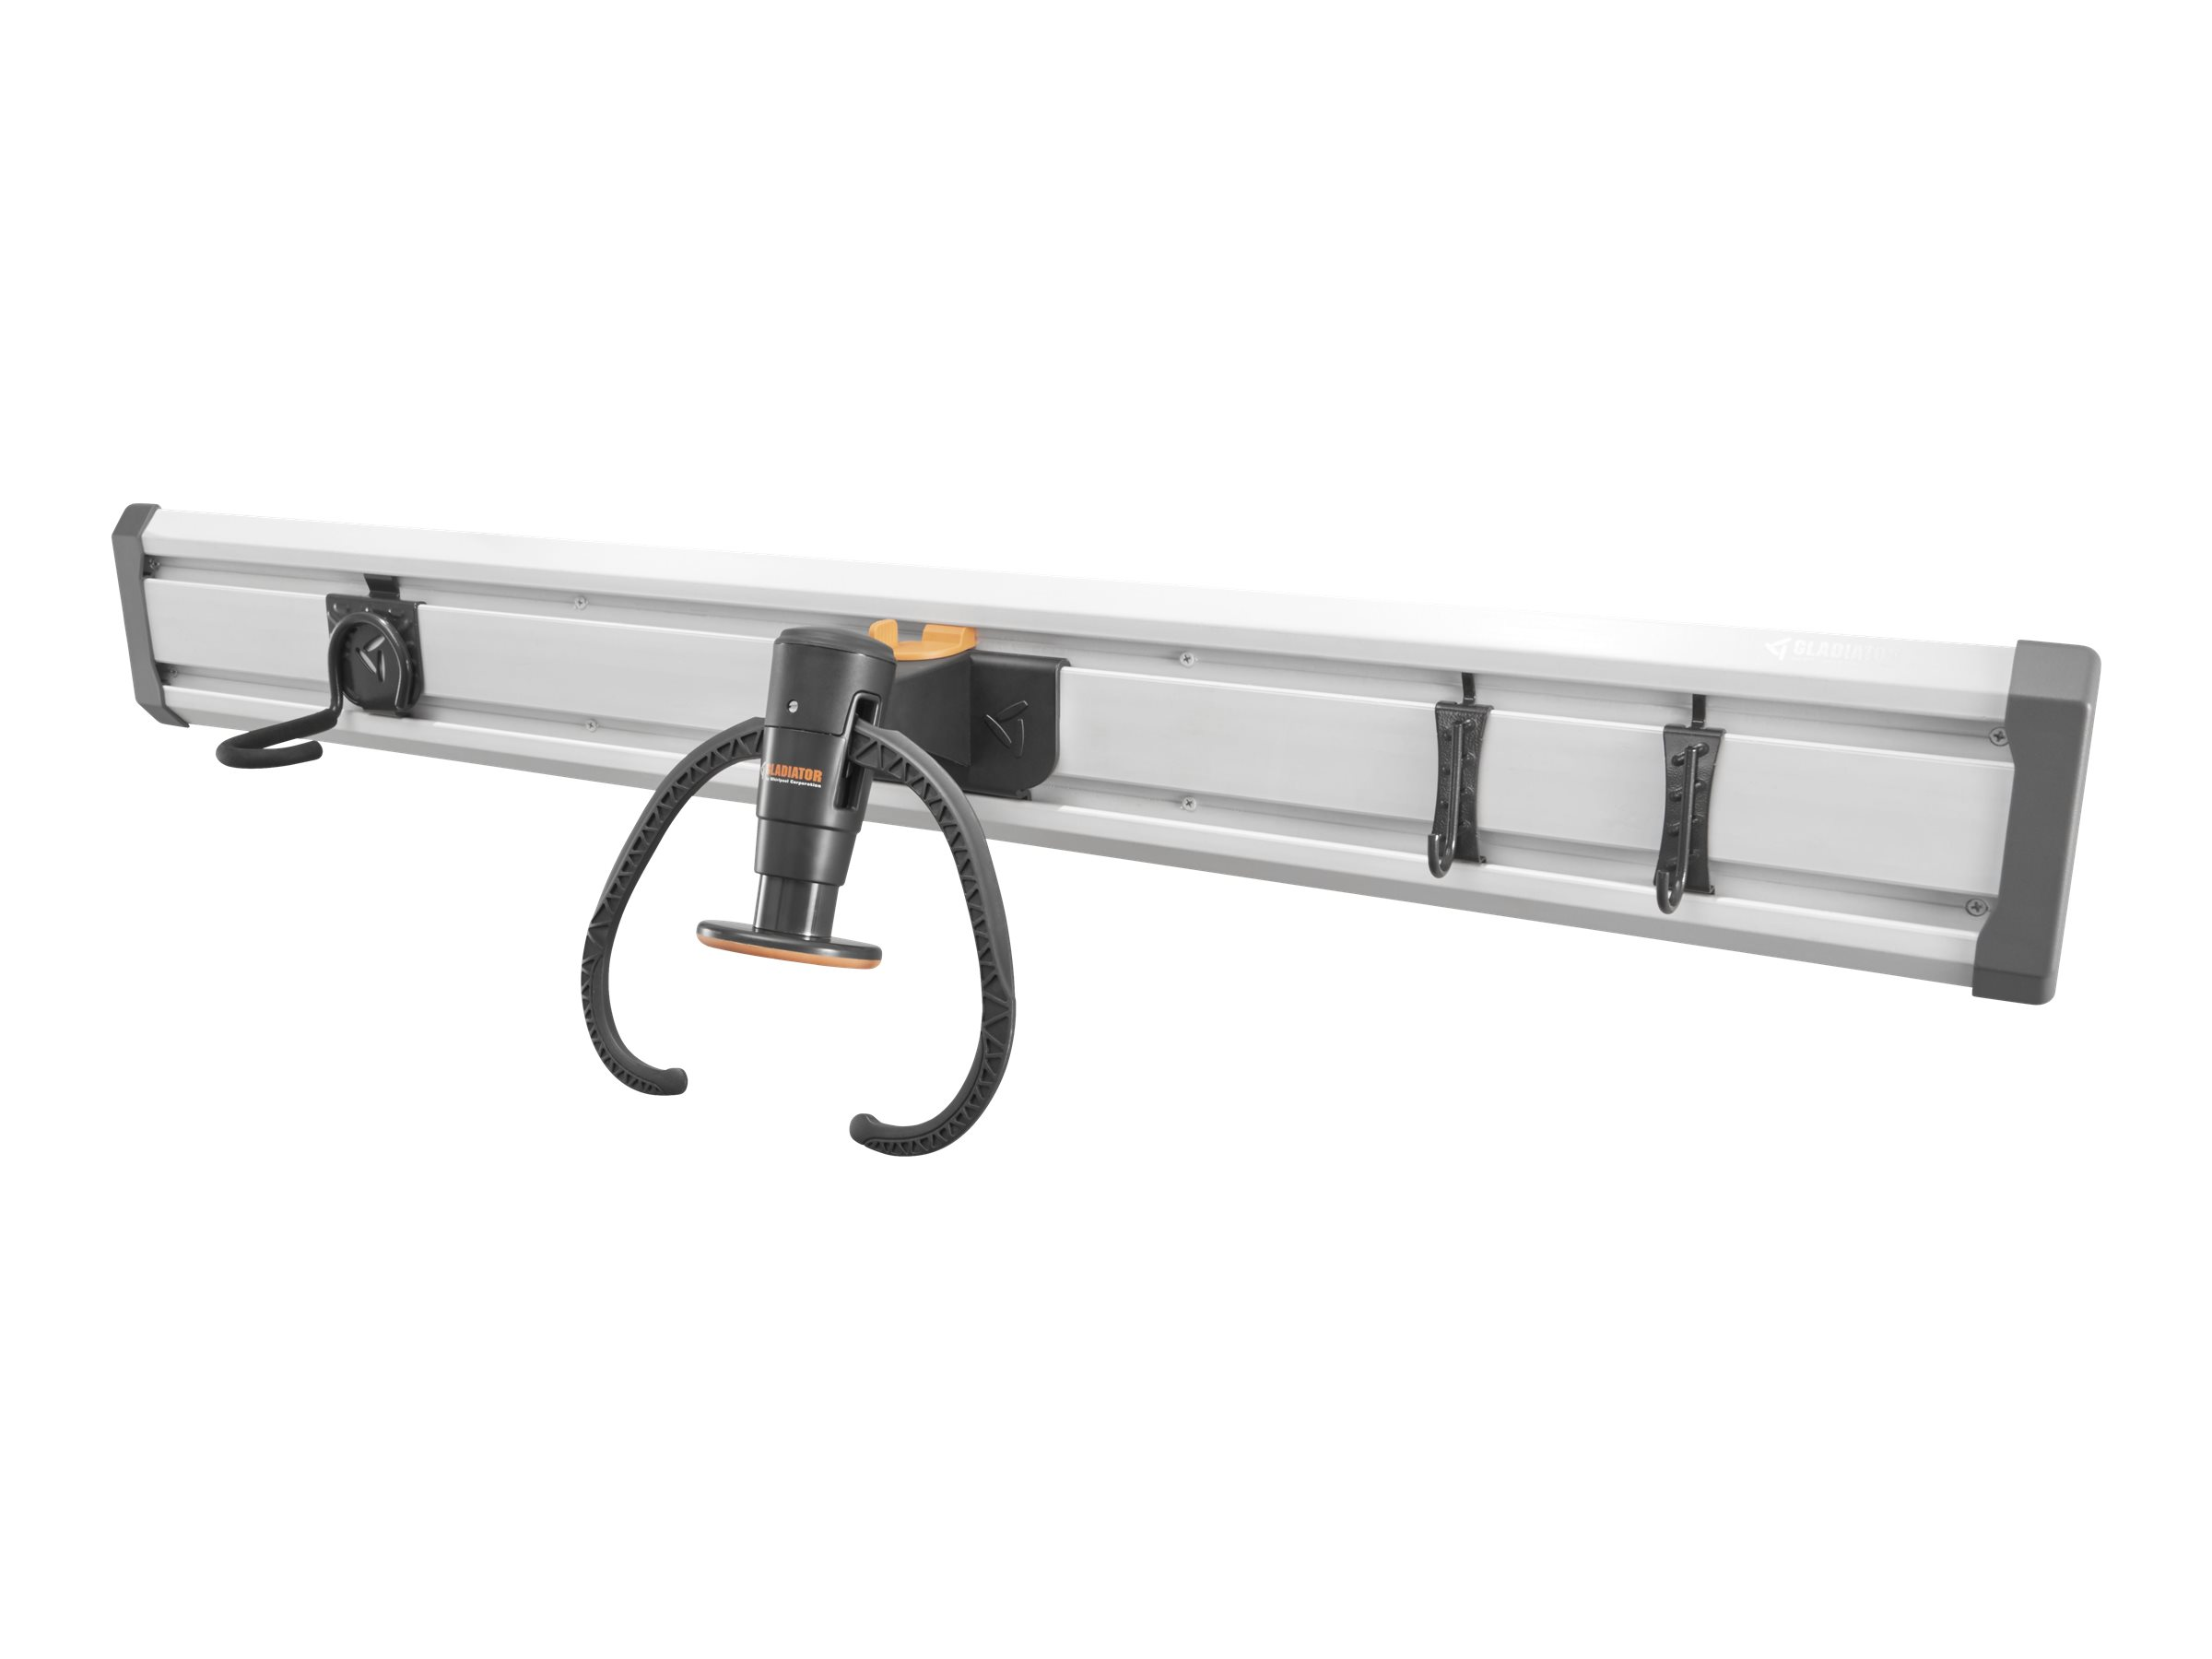 Gladiator Bike GearTrack Pack - Wall organization rail - gladiator gray